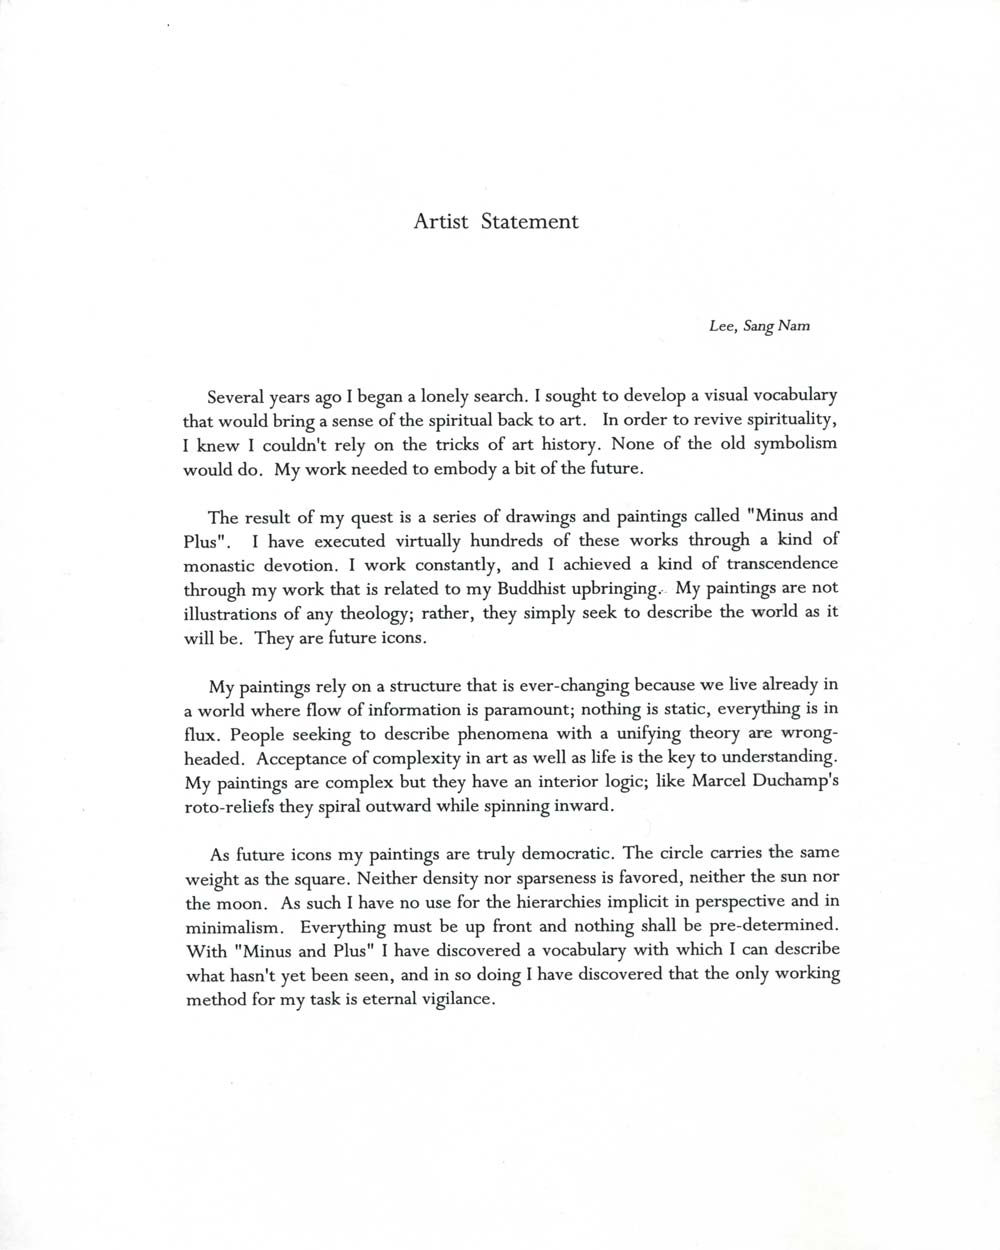 Sang Nam Lee's Artist Statement, undated